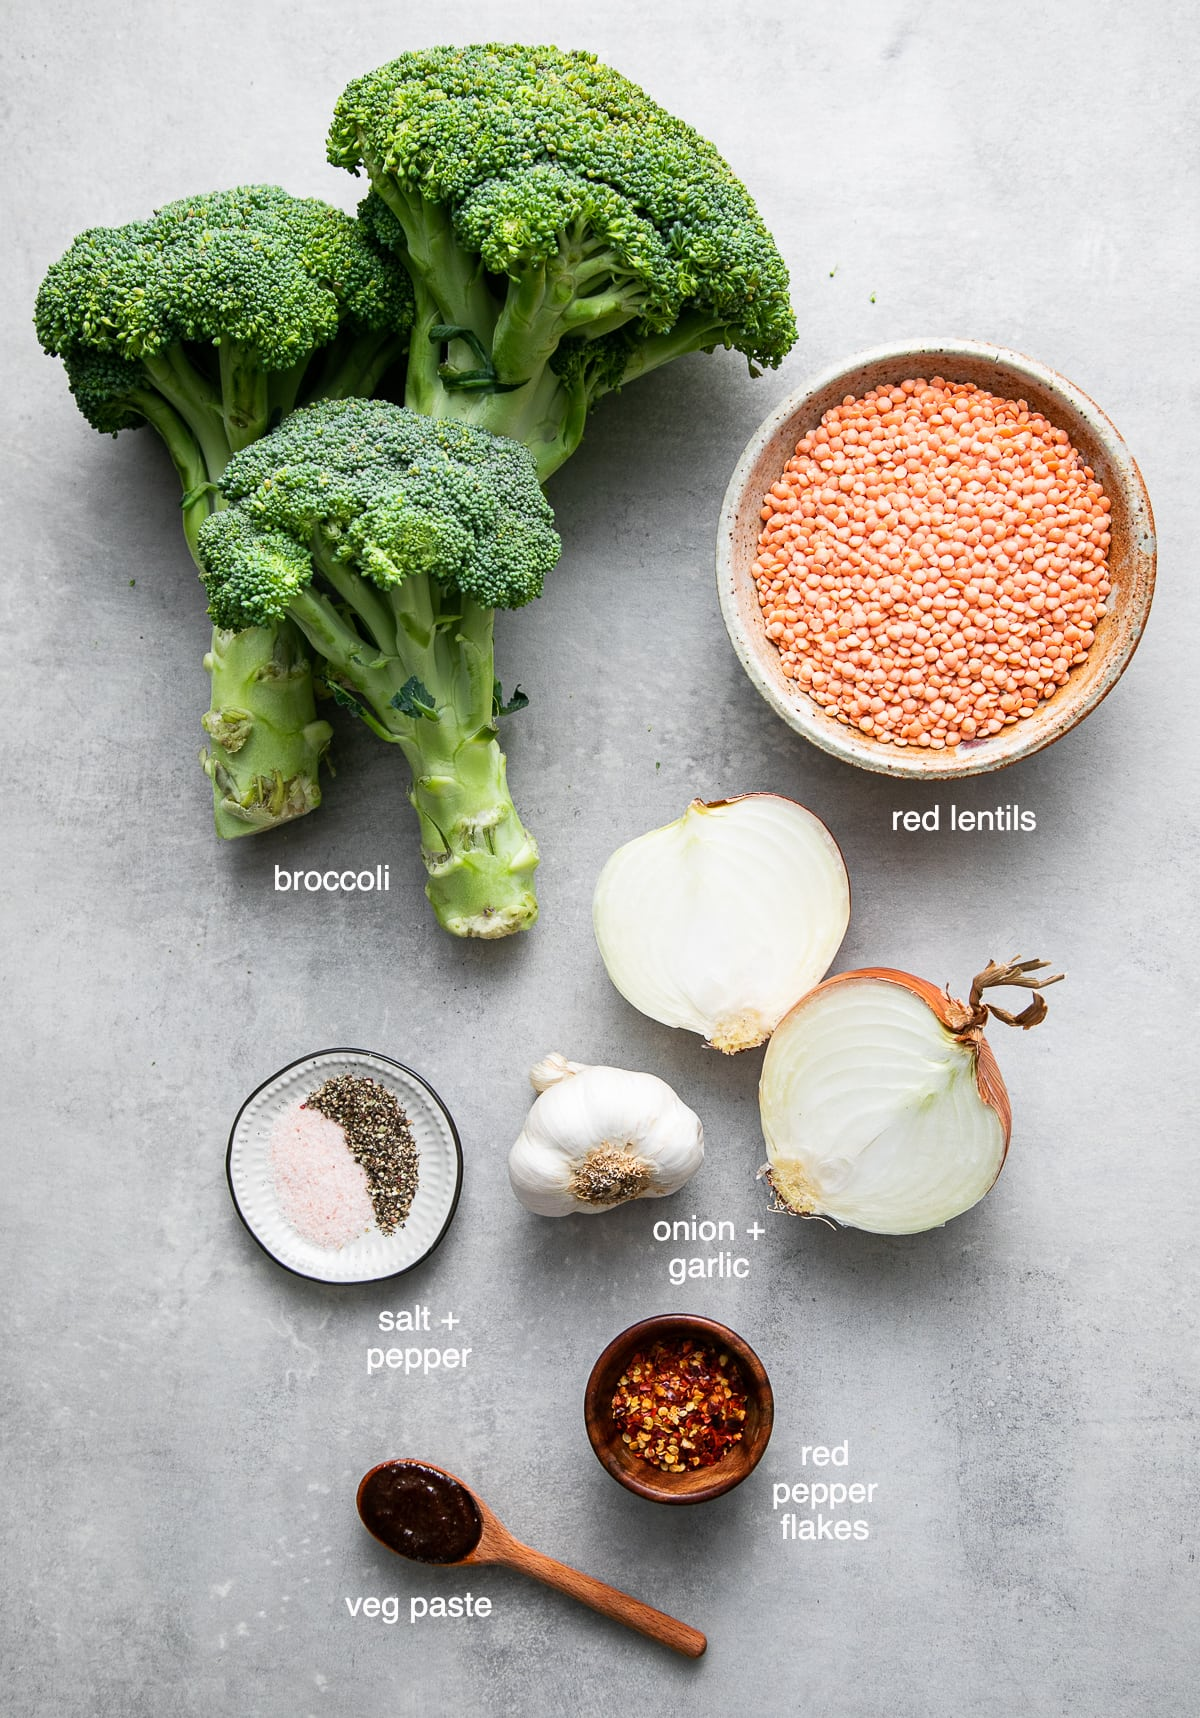 top down view of ingredients used to make creamy vegan broccoli red lentil soup recipe.